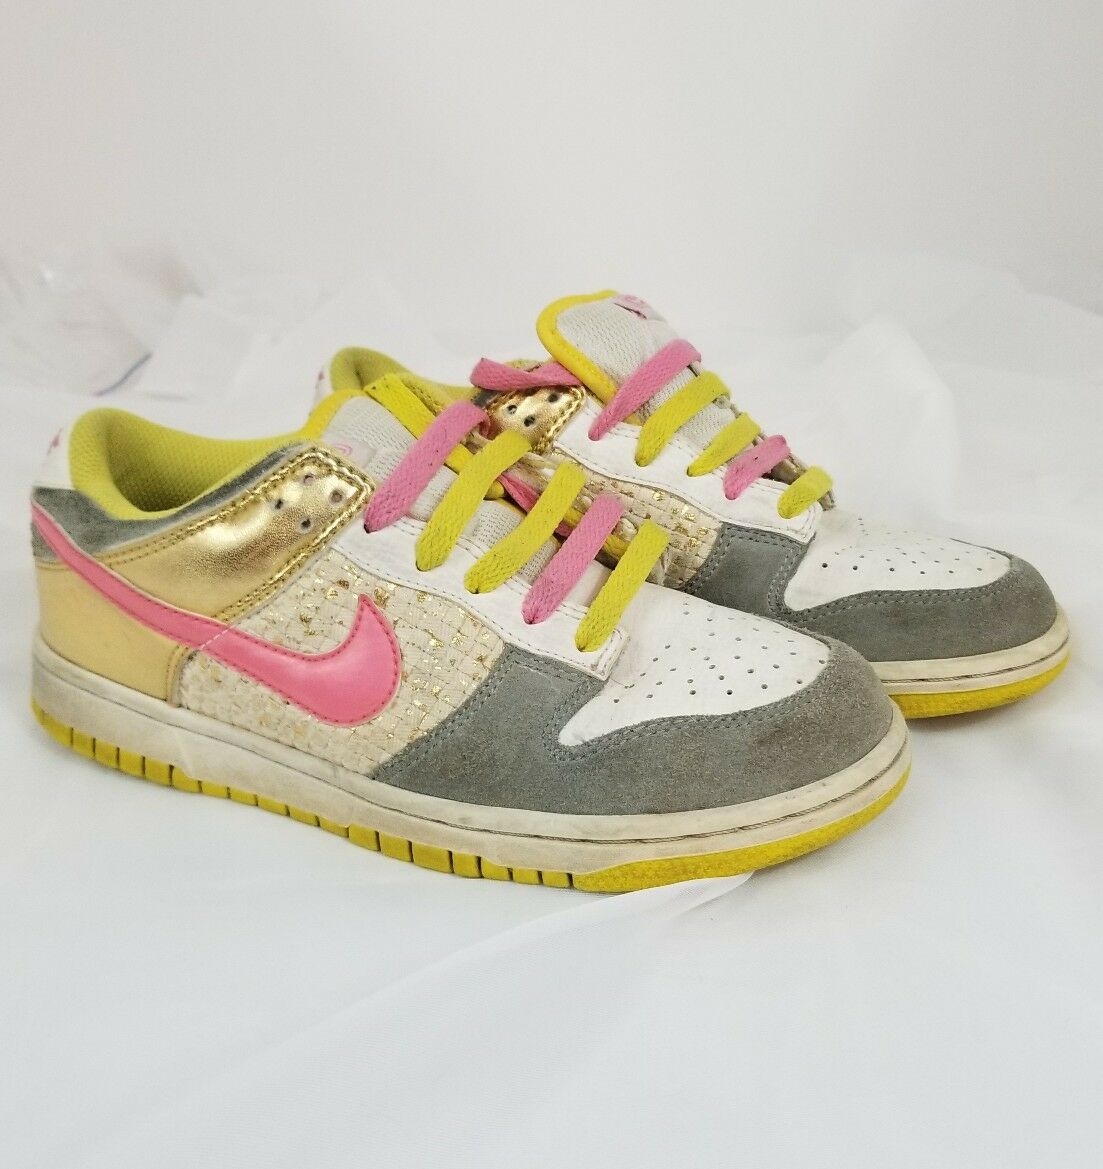 Women's Nike Ylw/Gray/Gold Dunk Athletic Shoes 314141-162 Pink Ylw/Gray/Gold Nike Metallic, Size 7 d5a687